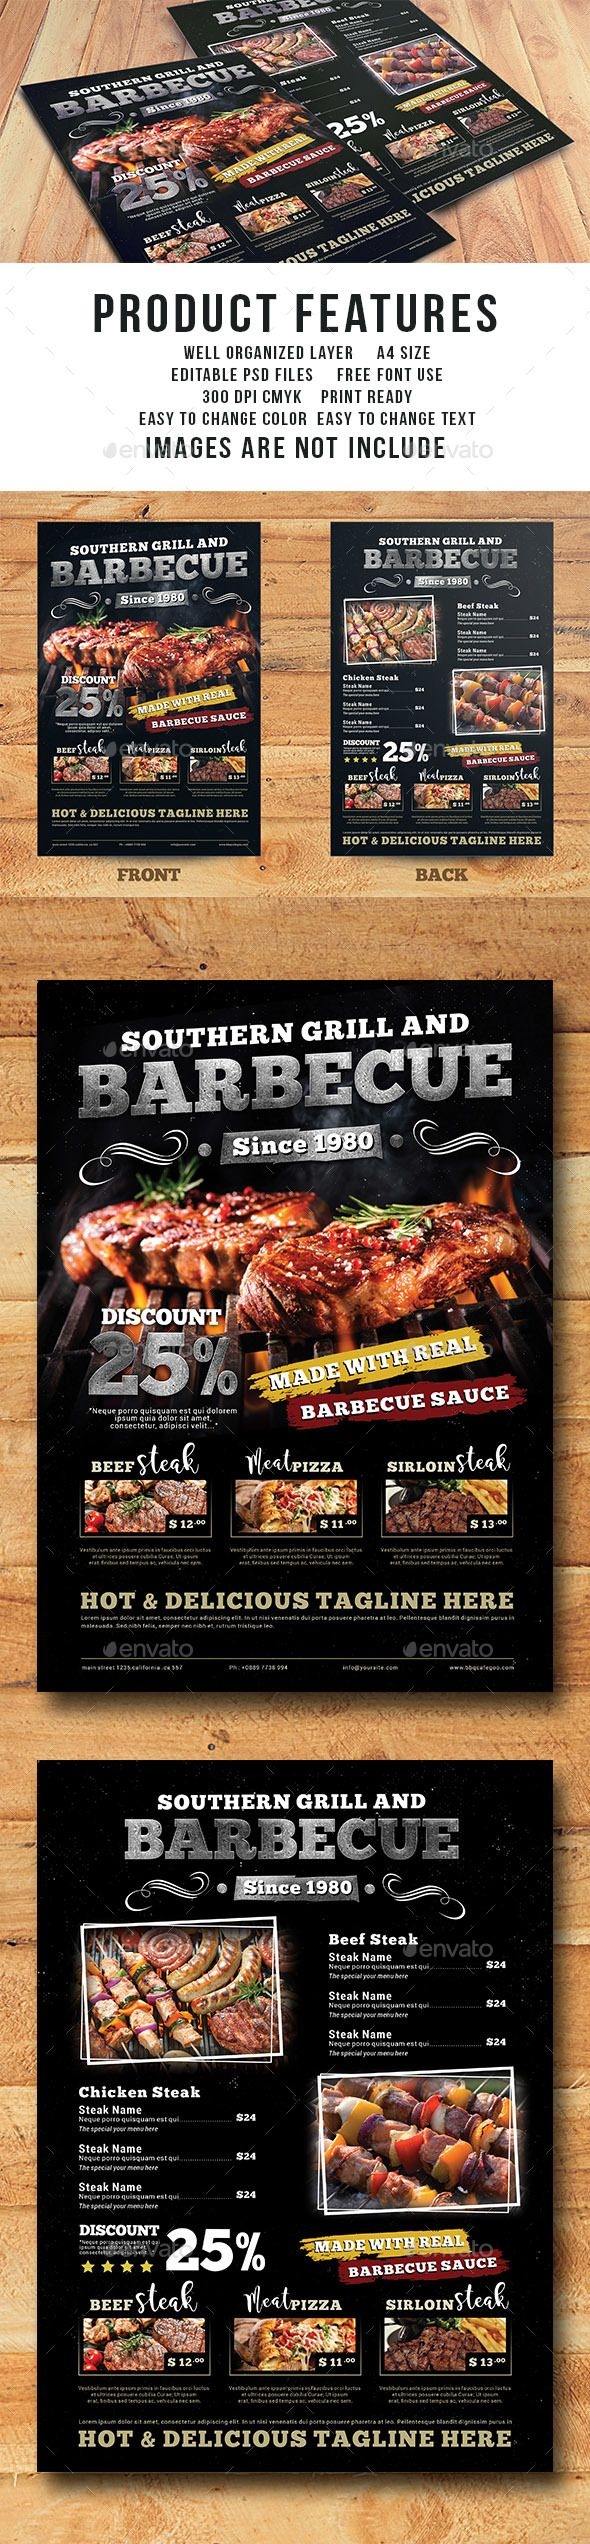 Pin by premium design on food menus template pinterest 17 barbecue joints in texas you need to try before you die maxwellsz